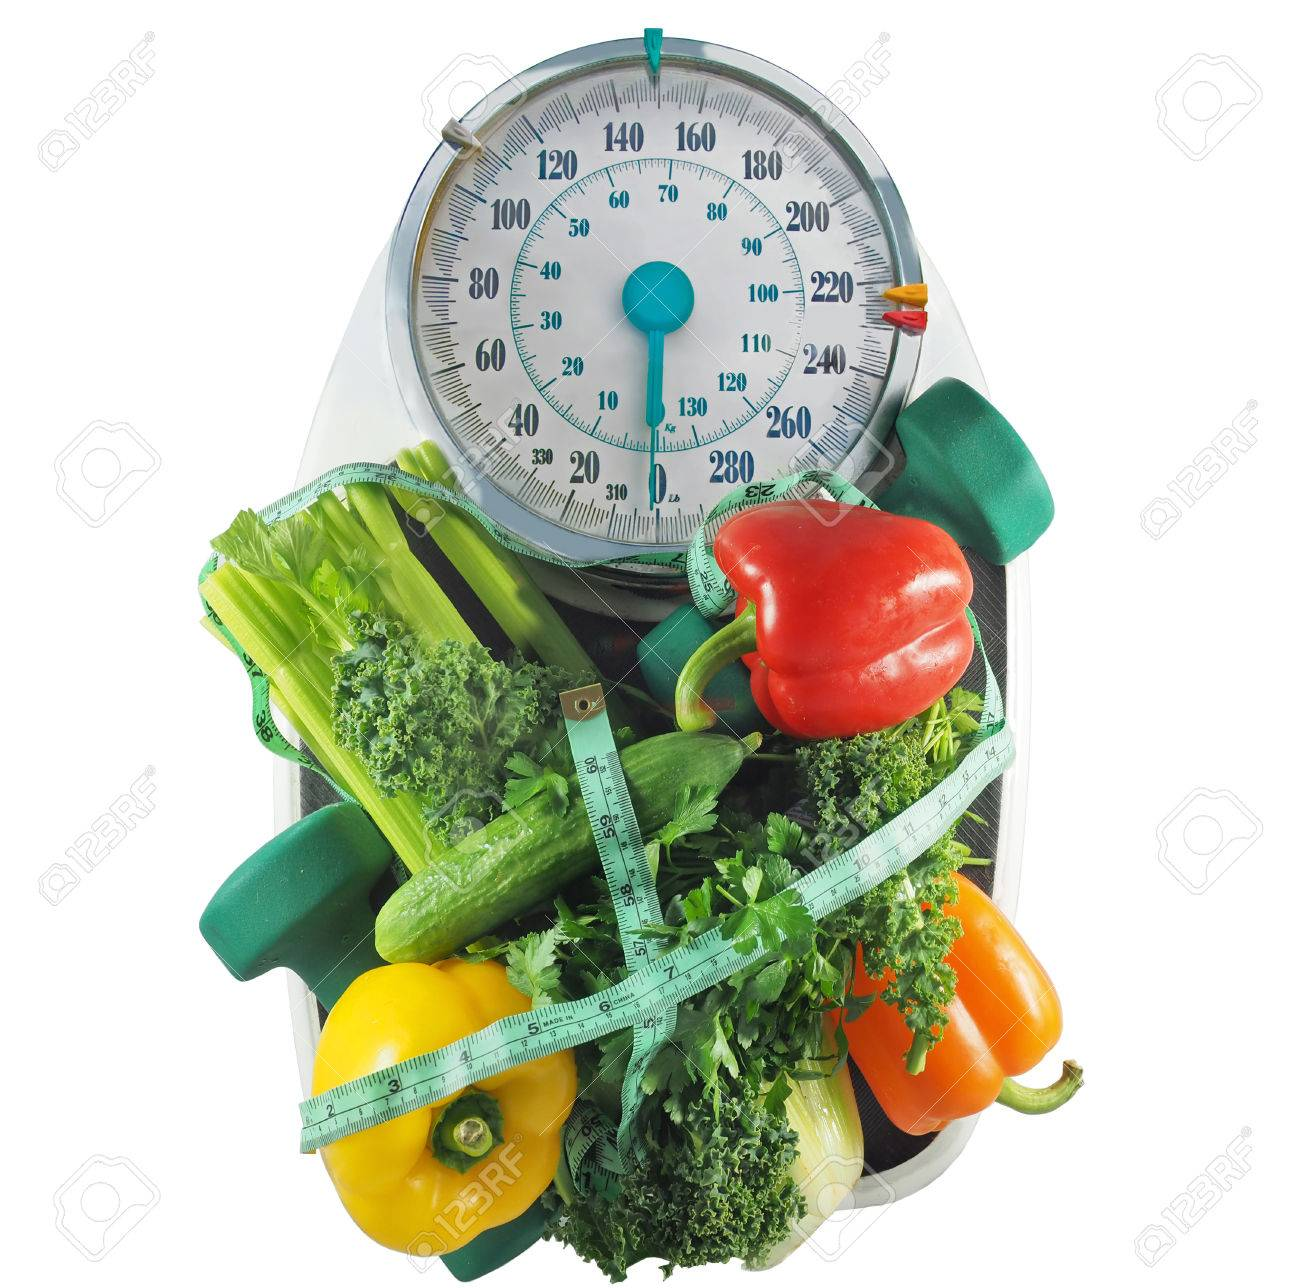 Astonishing Vegetables On A Bathroom Scale With Dumbbells Measuring Tape Download Free Architecture Designs Scobabritishbridgeorg